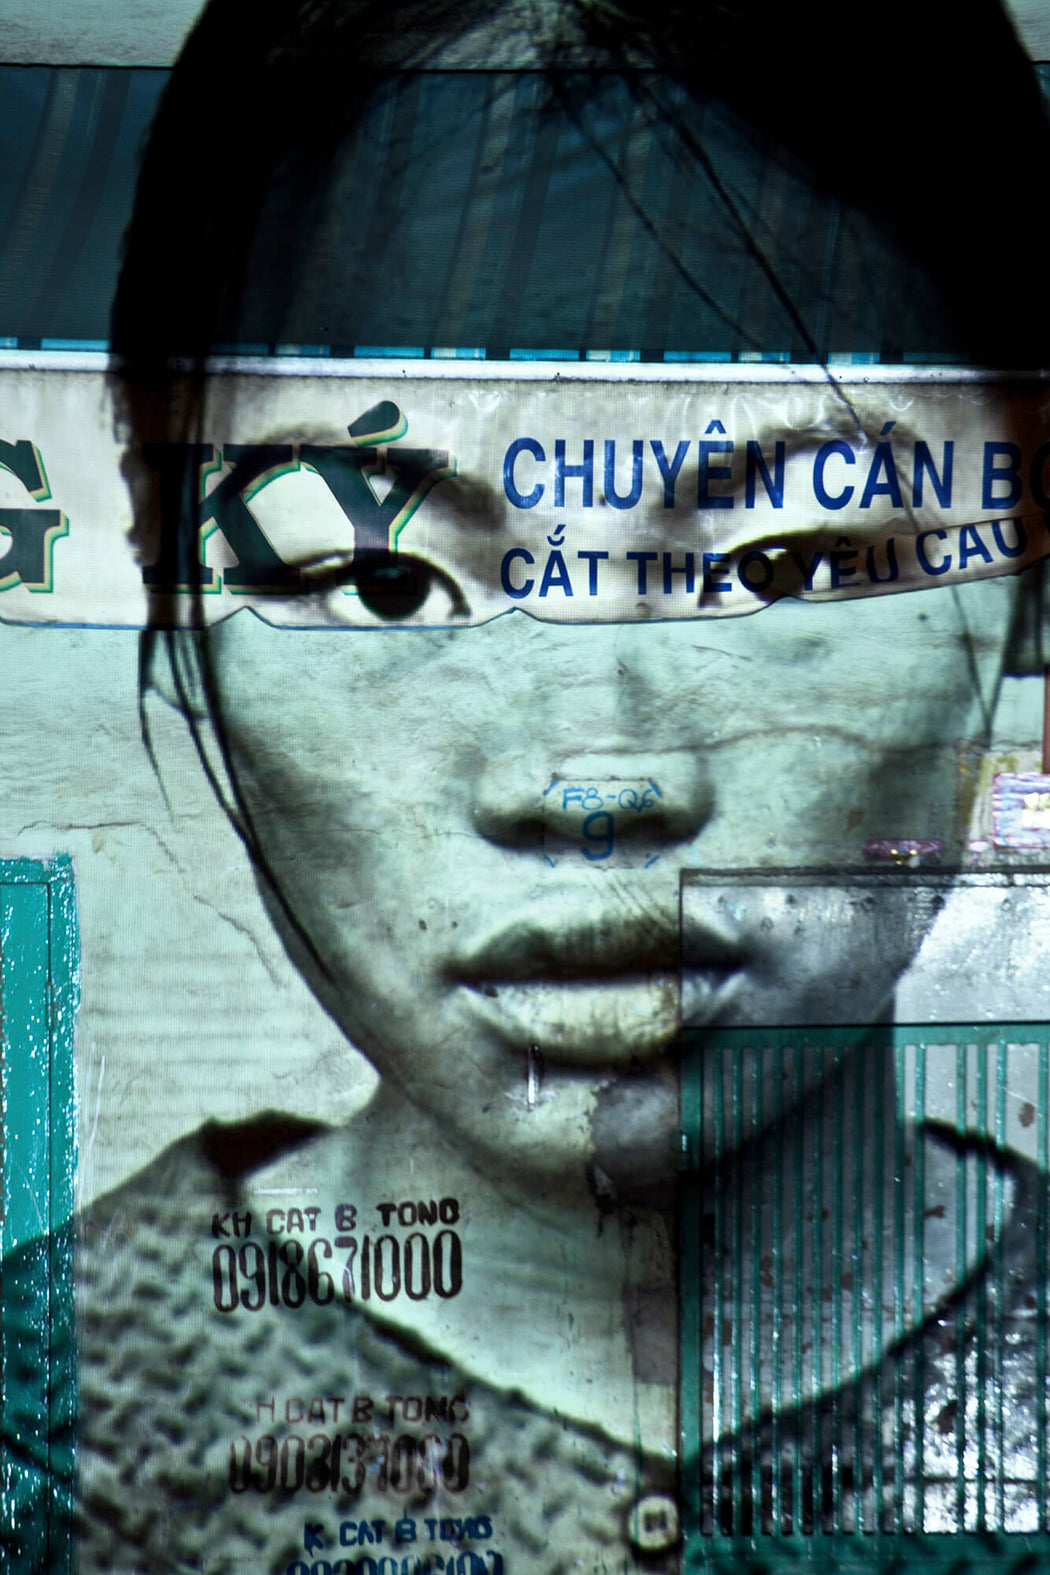 Les Cicatrices de la Nation (projected on a shop frontage, in Cholon)  - Olivia Marty | FFOTO